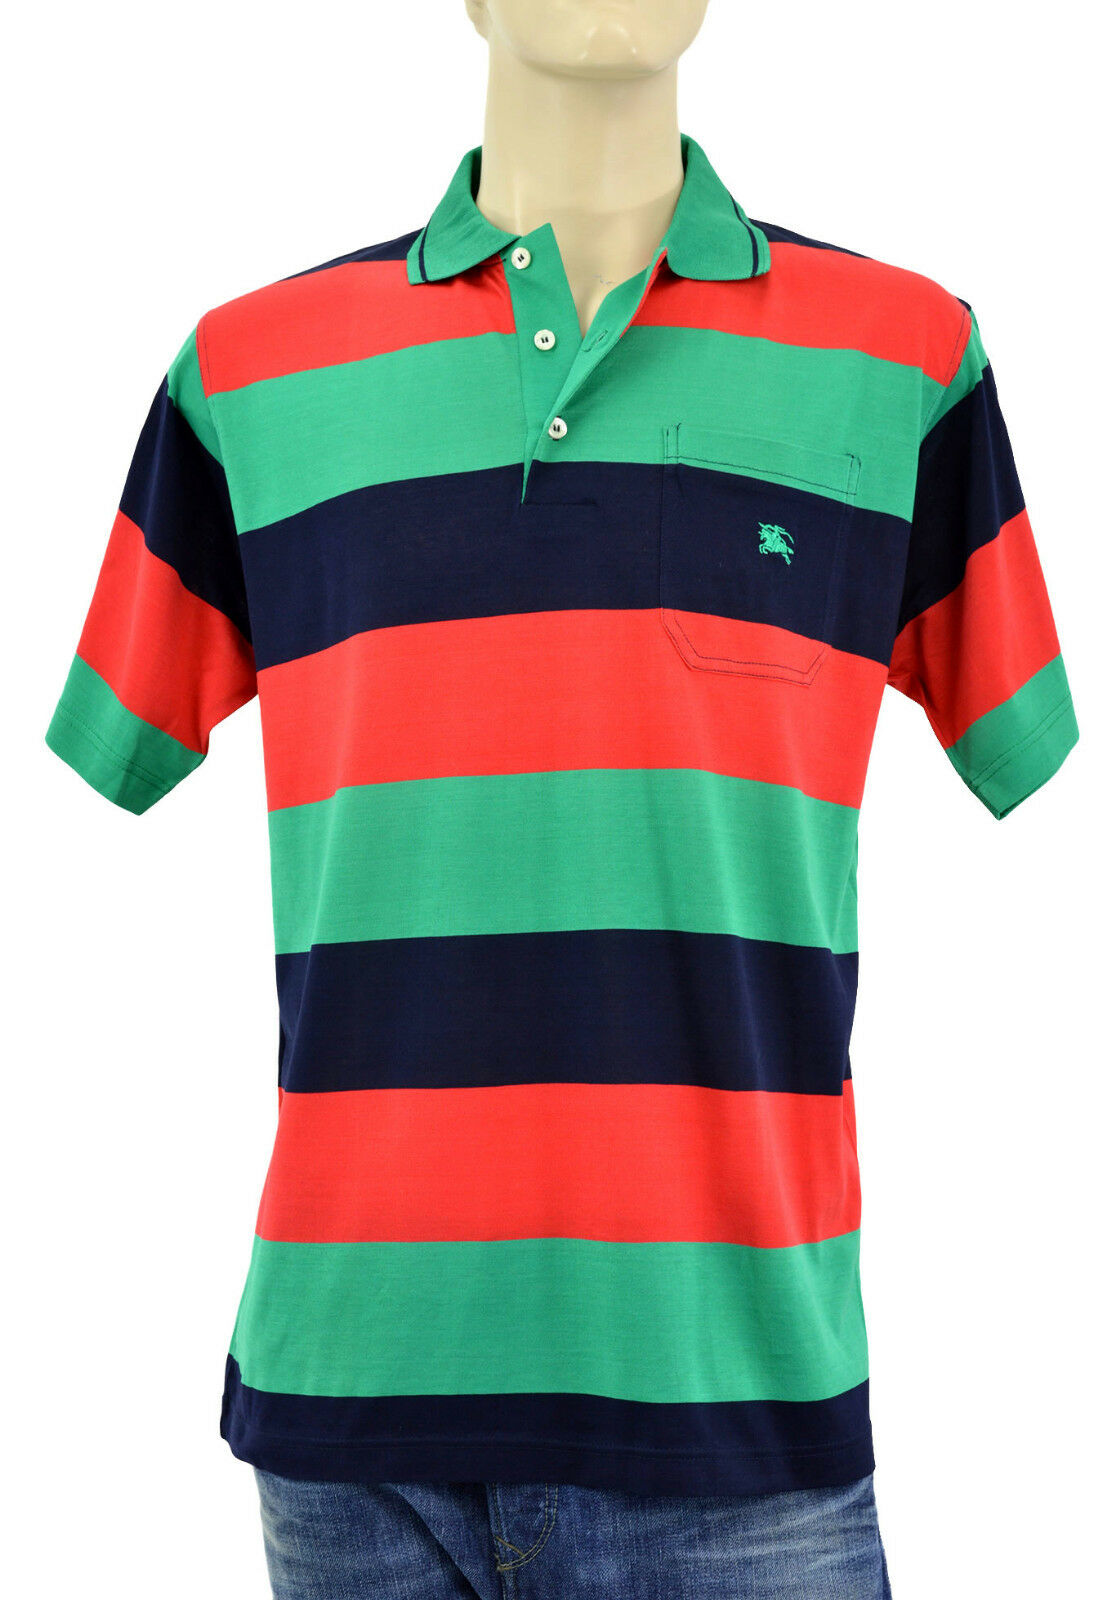 195 Burberry London Green Red Blue 100 Cotton Mens Polo Shirt S